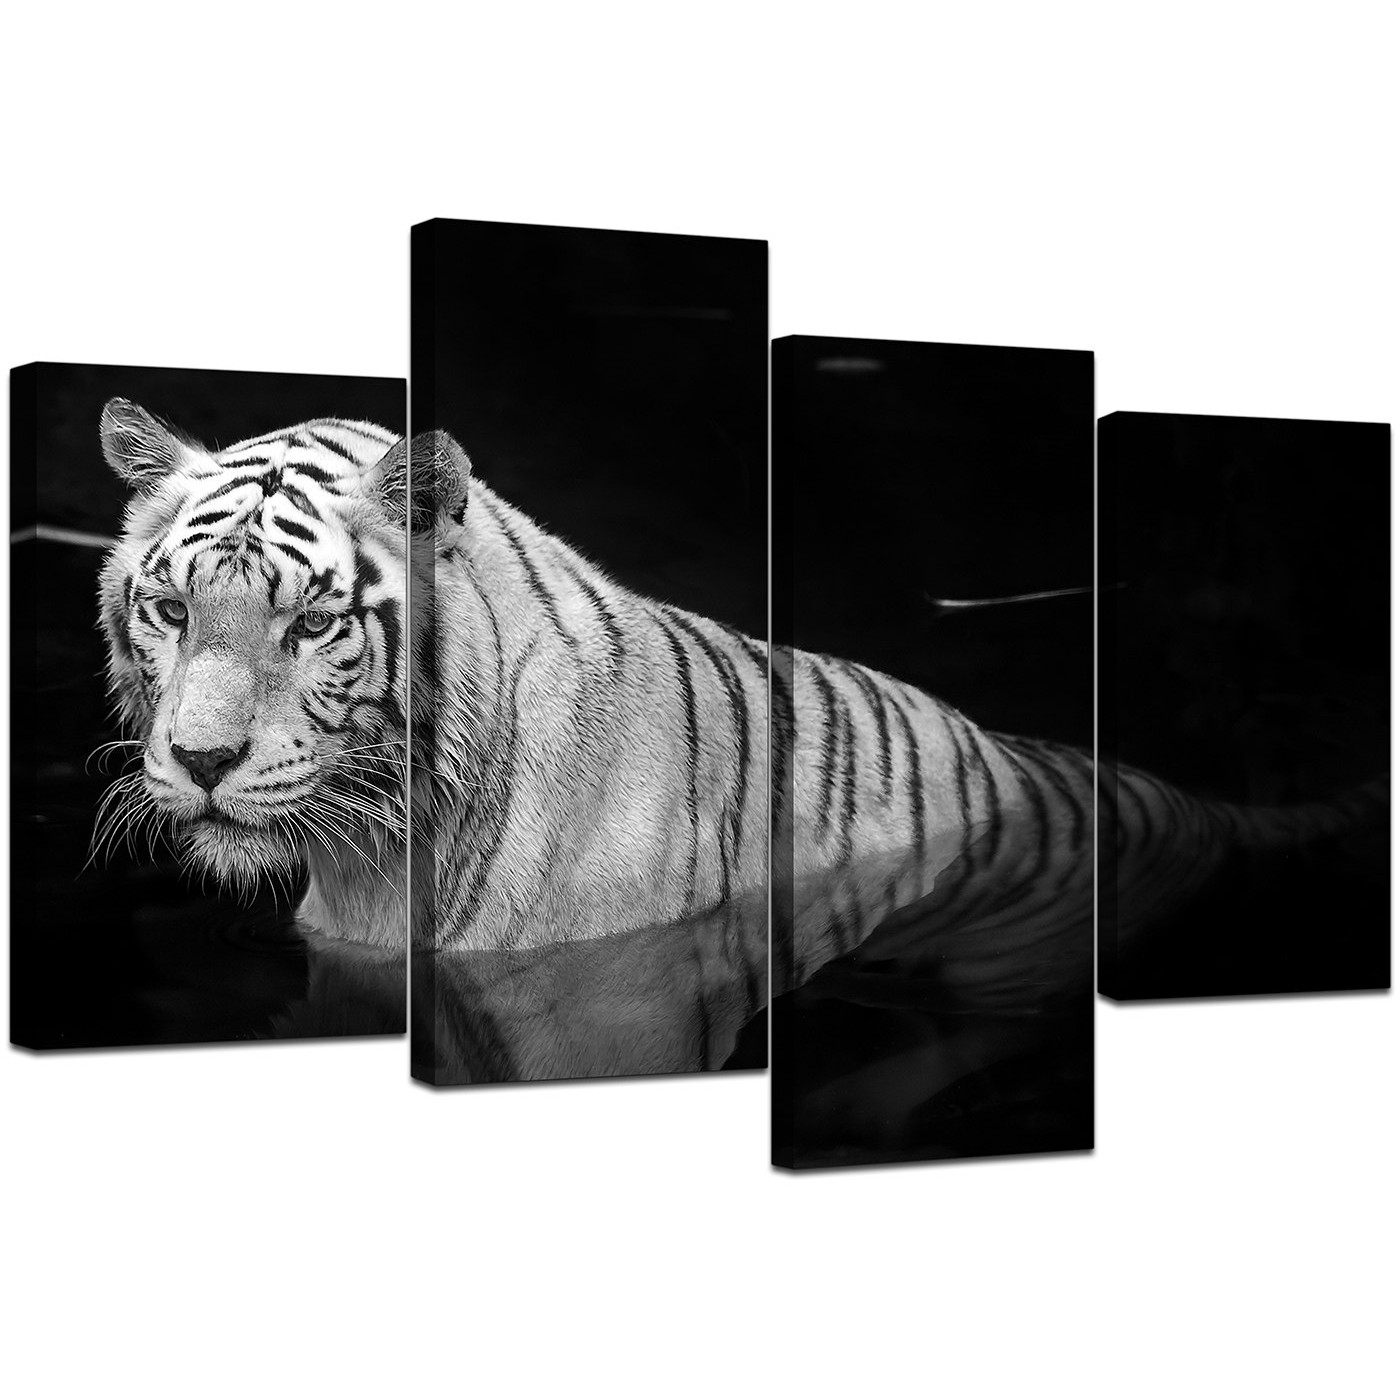 Howling Color Black Four Black Canvas Display Gallery Item Black Display Gallery Item Set Bedroom Black Canvas Art Tiger Canvas Wall Art Canvas Art 2 Piece Set art Black And White Canvas Art